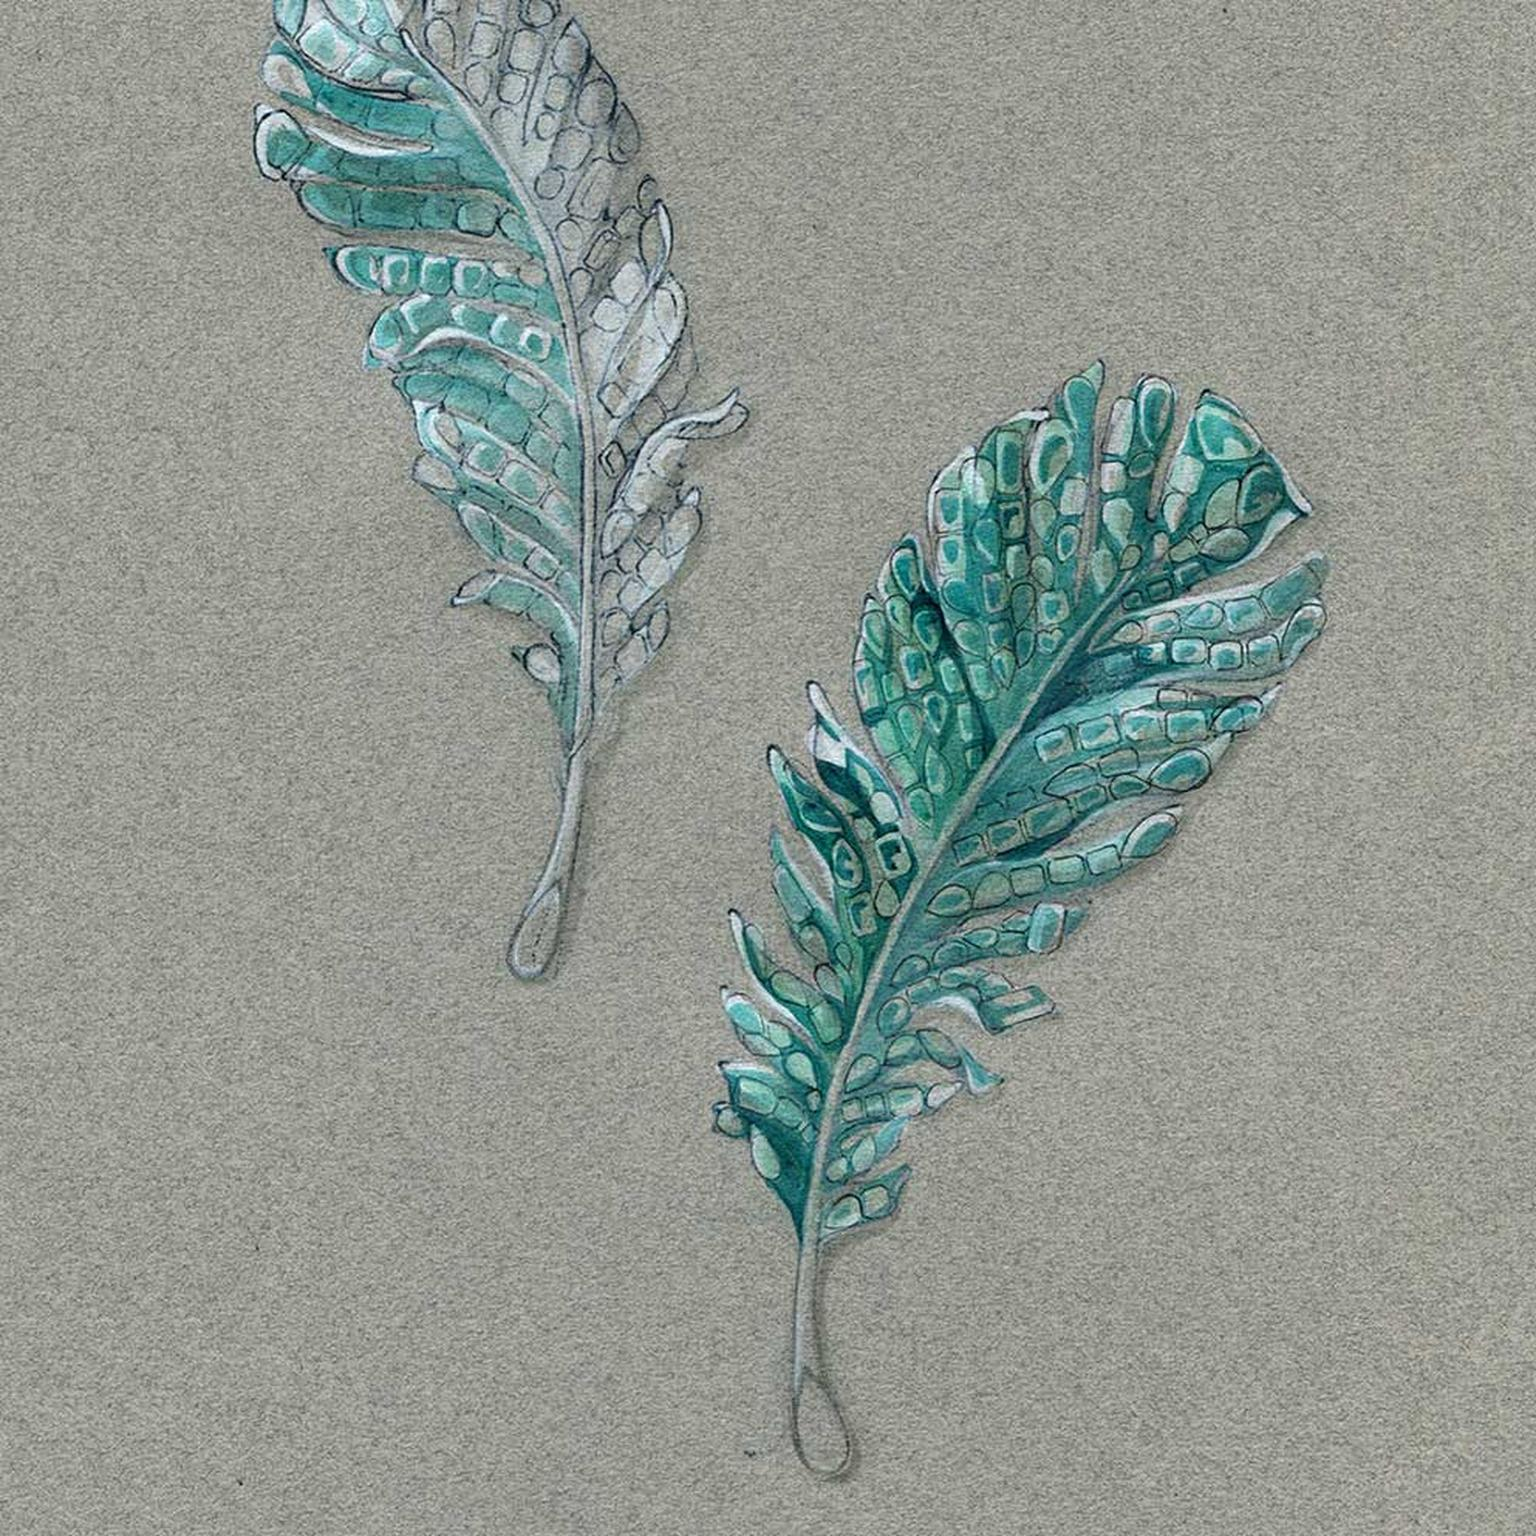 Cindy Chao Black Label Masterpiece emerald feather brooches  early sketch